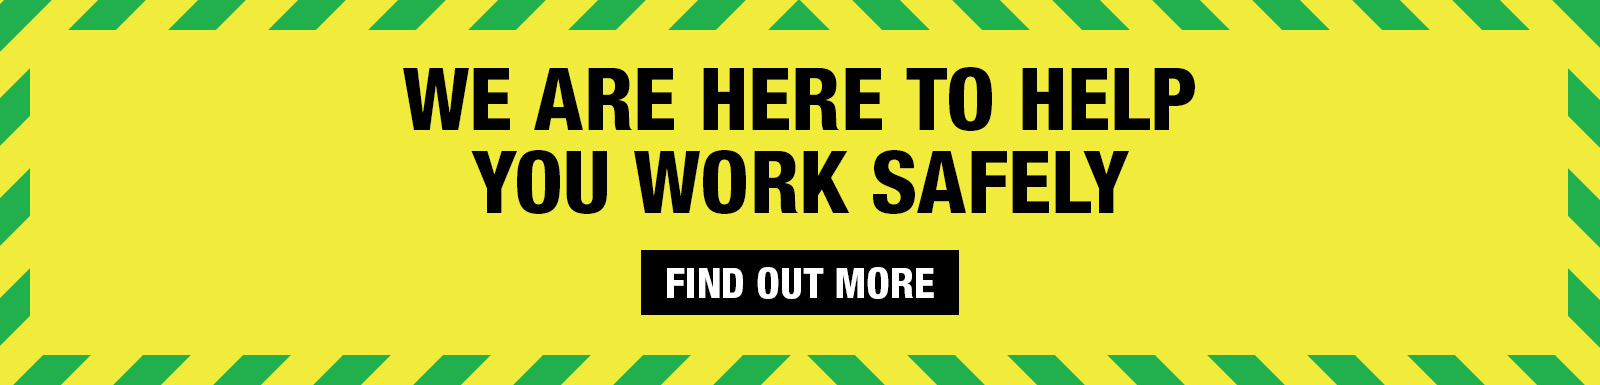 We are here to help you work safely